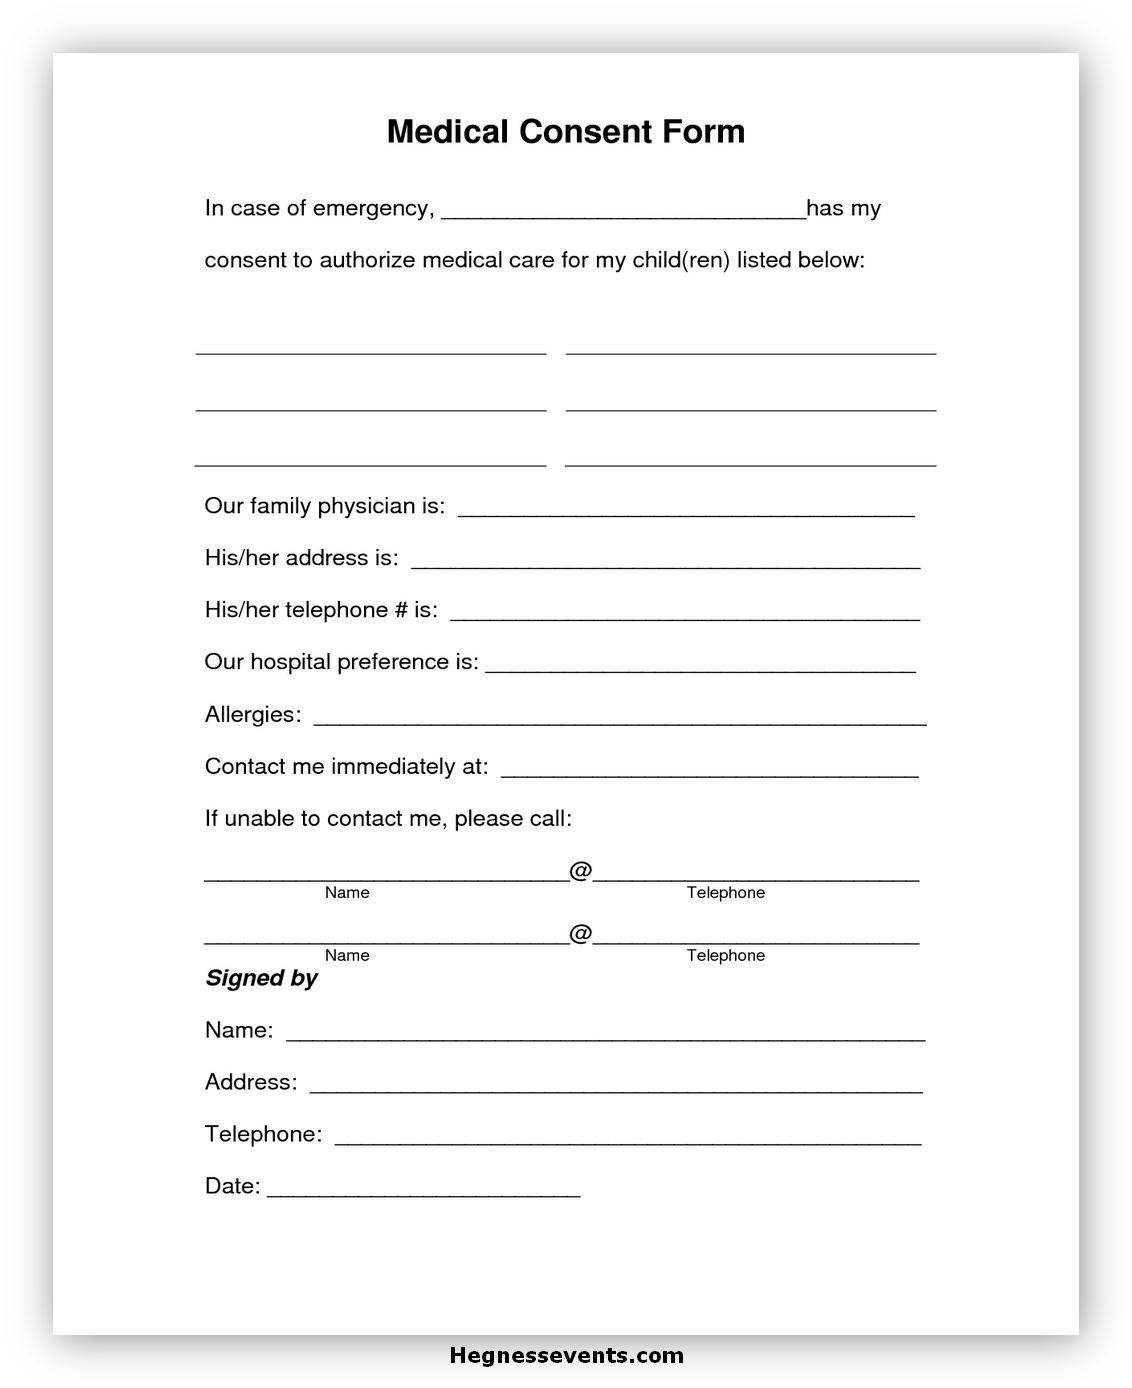 Child Medical Consent Form Notarized 2